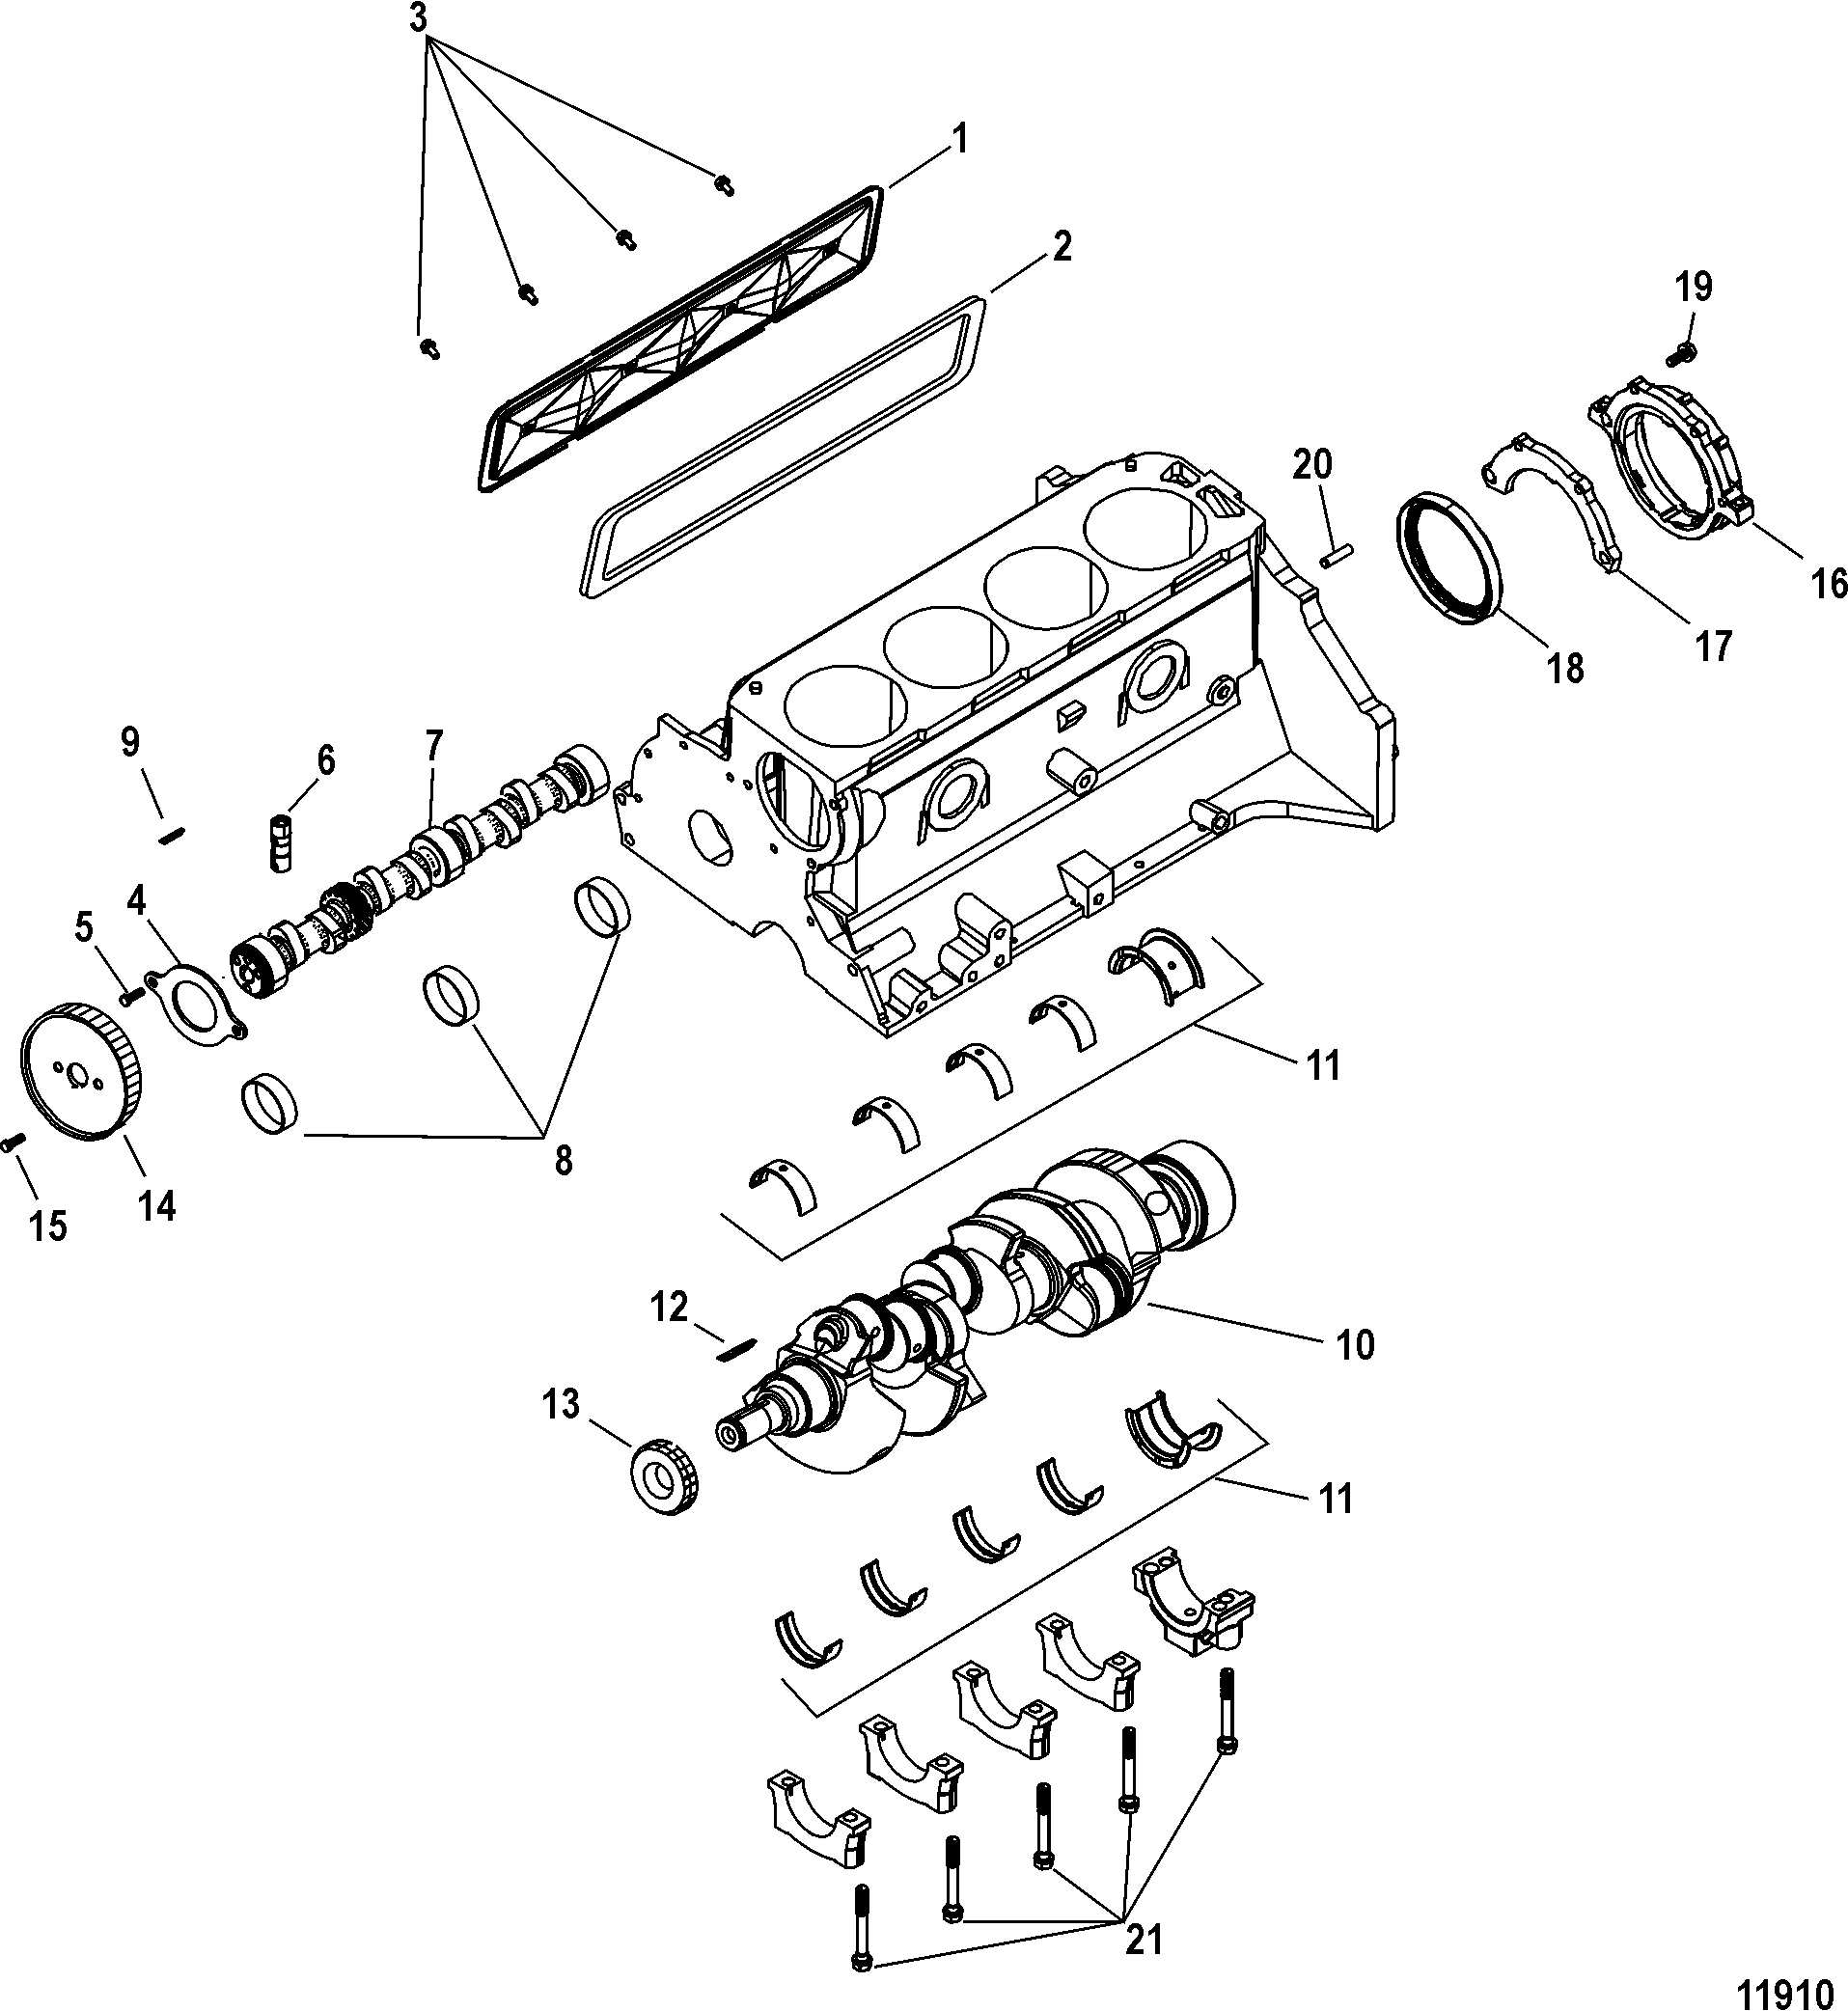 mercruiser alpha one parts diagram wiring plc omron cpm1a cylinder block crankshaft and camshaft for 3